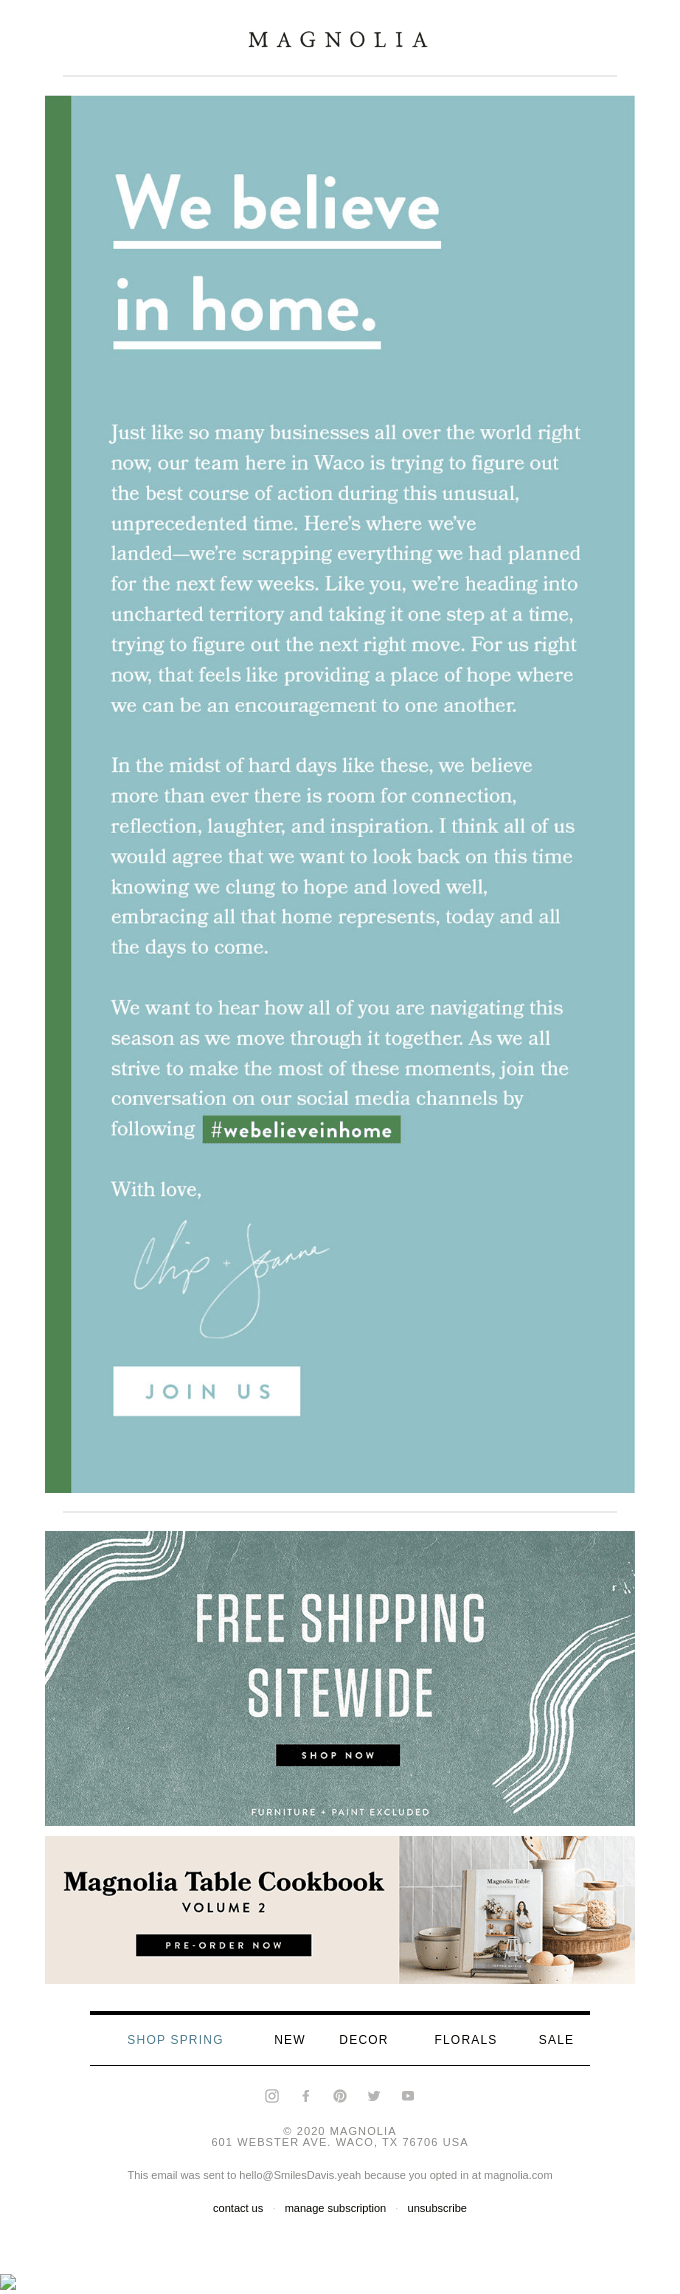 A letter from Chip and Joanna